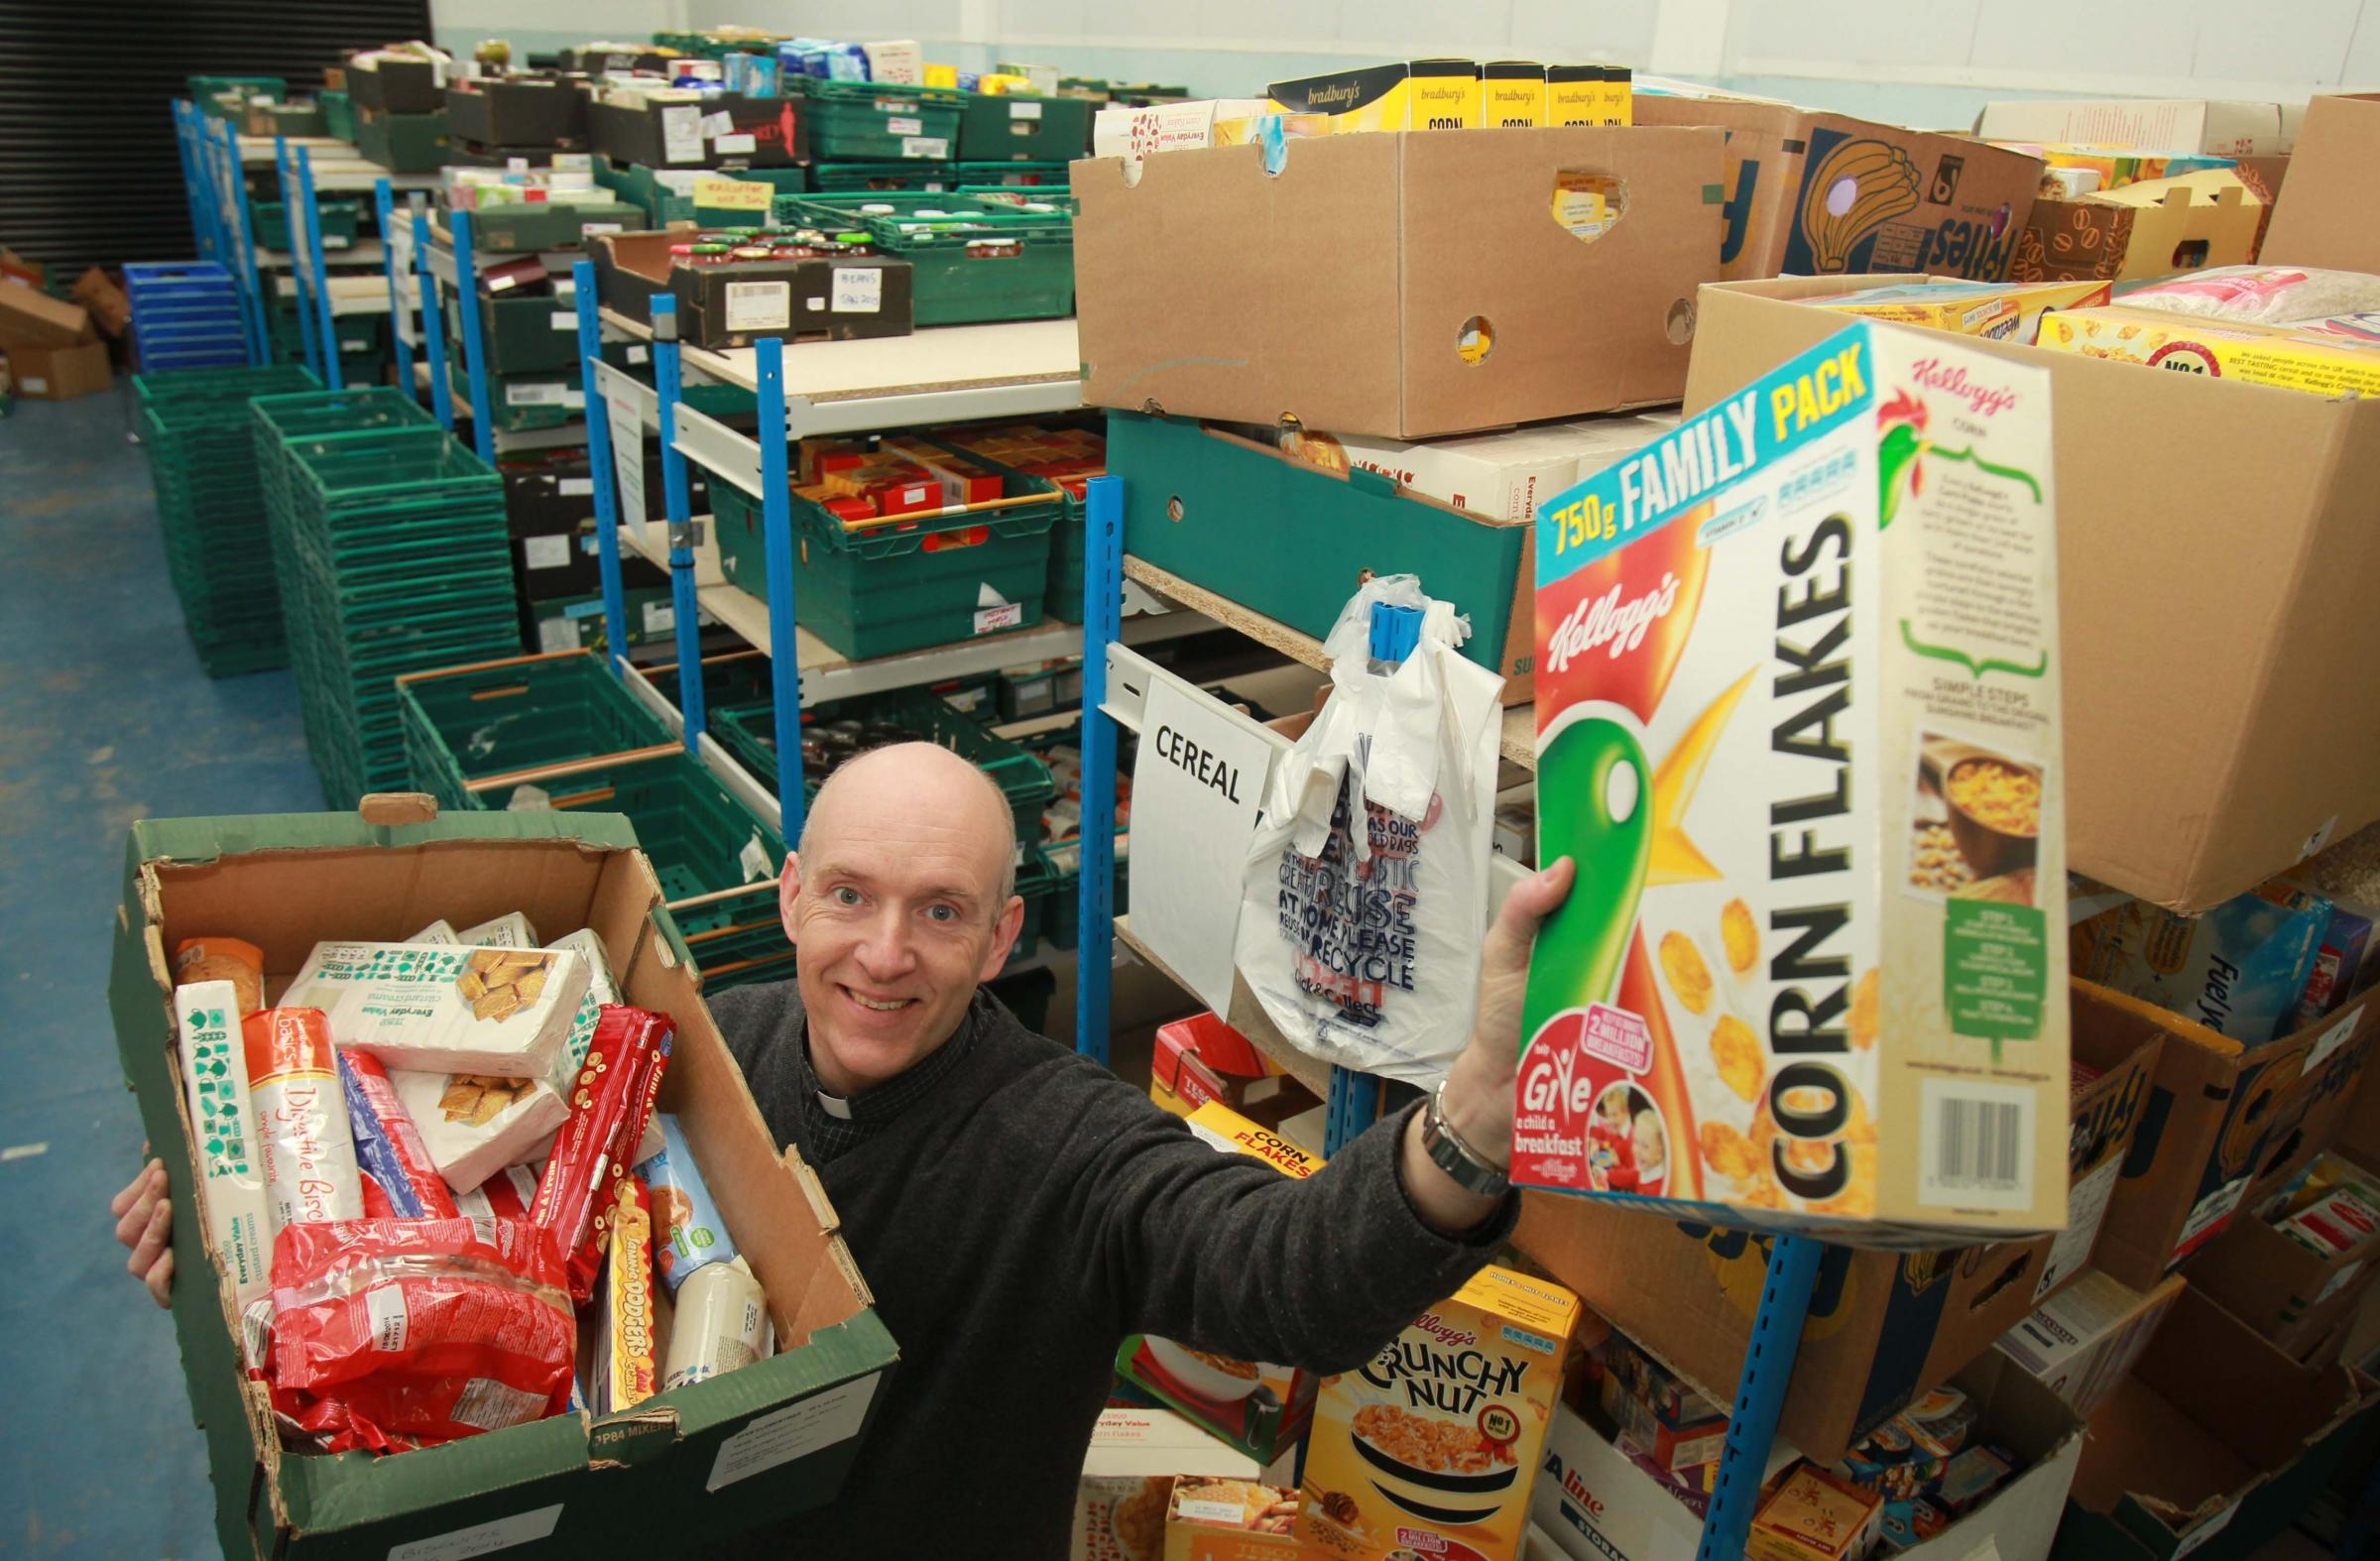 Increasing demand on food banks